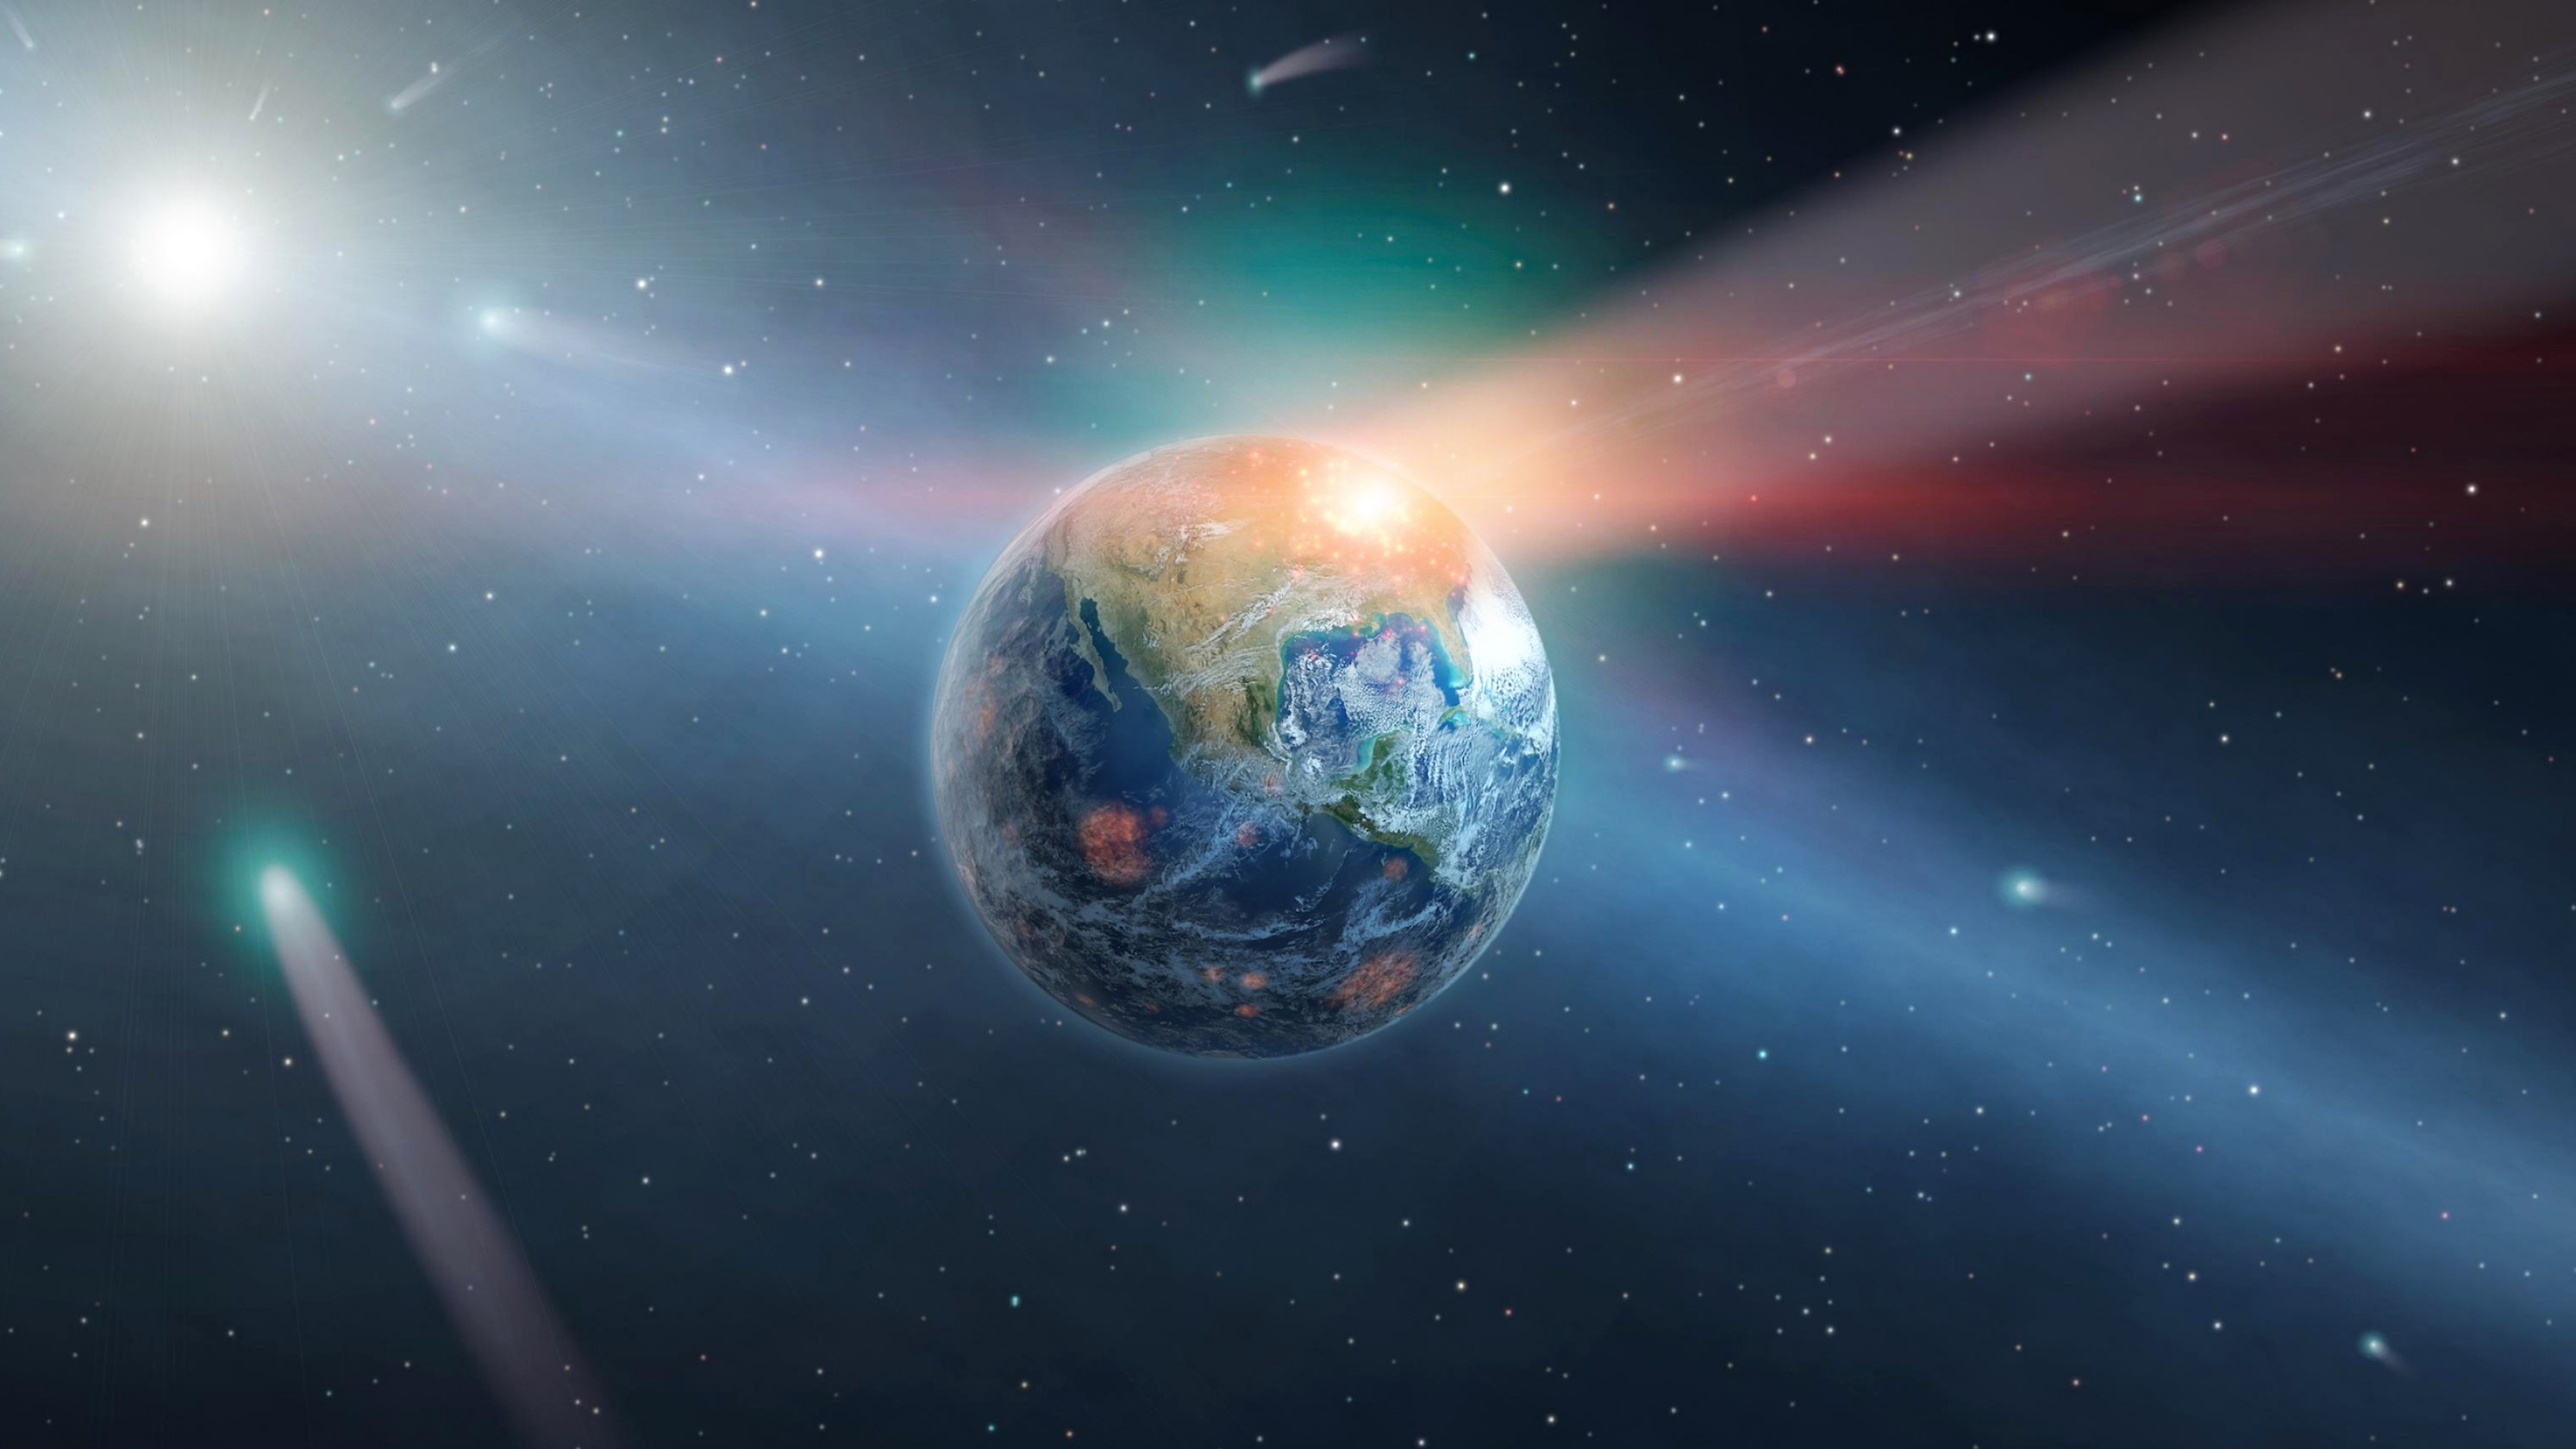 Nuclear-Sized Asteroid Blasts Hit the Earth a Lot More Than You Think